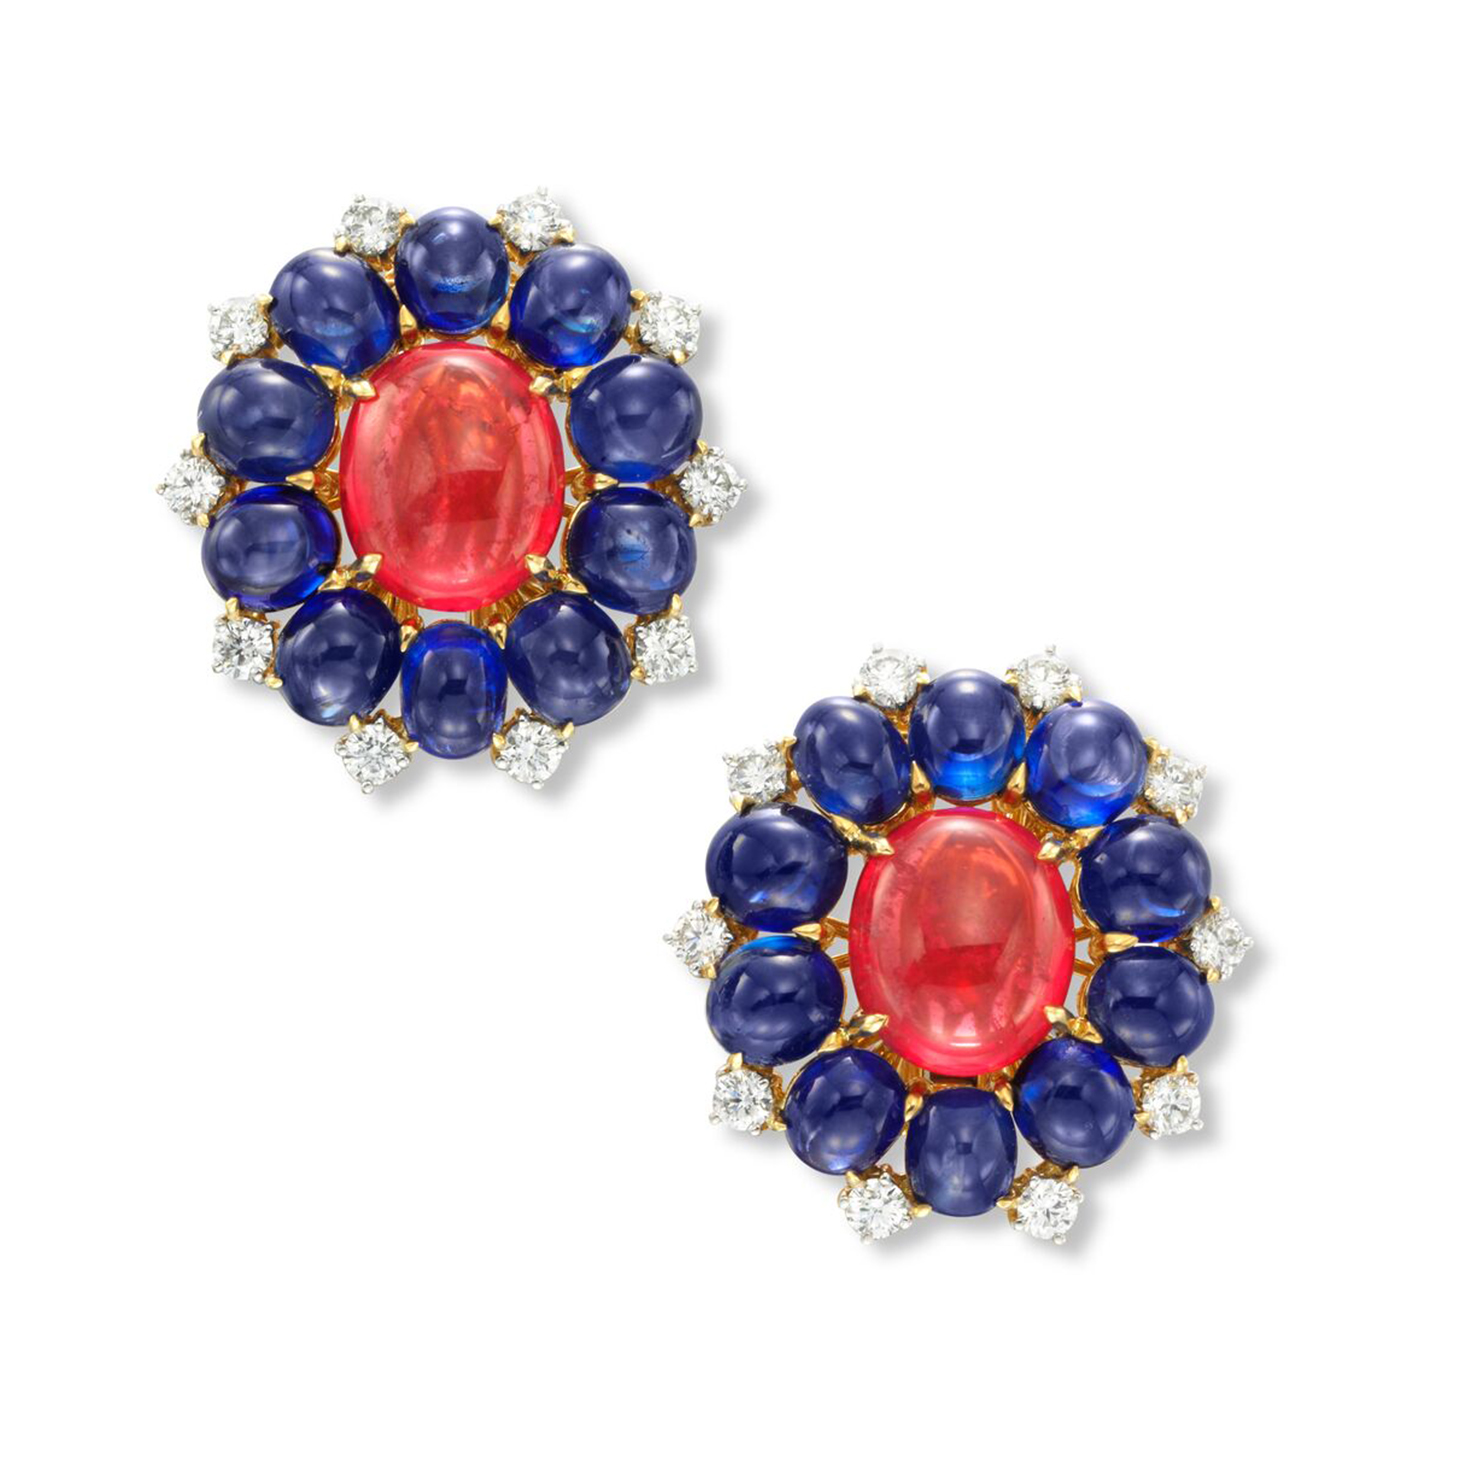 A Pair of Spinel, Sapphire and Diamond Ear Clips, by Bulgari, circa 1960